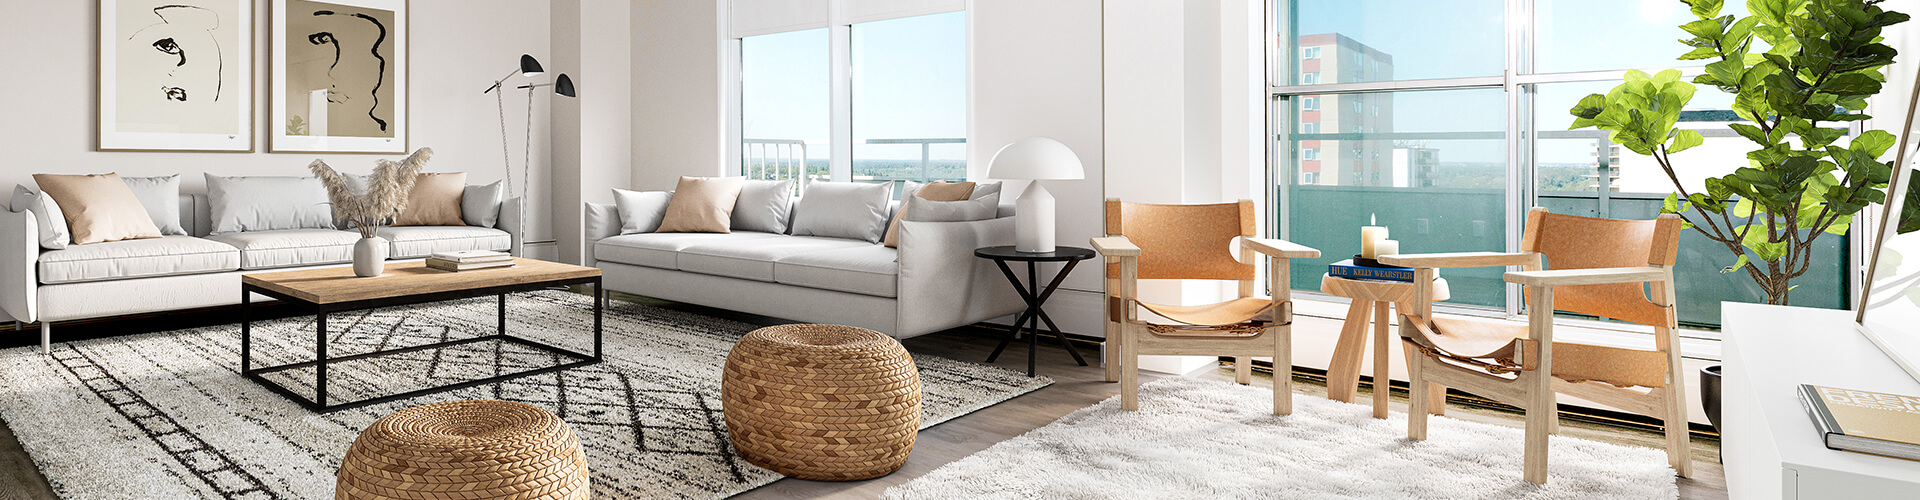 Beautiful living room at The Lancaster House Apartments in Montreal. Rent with Minto Apartments.